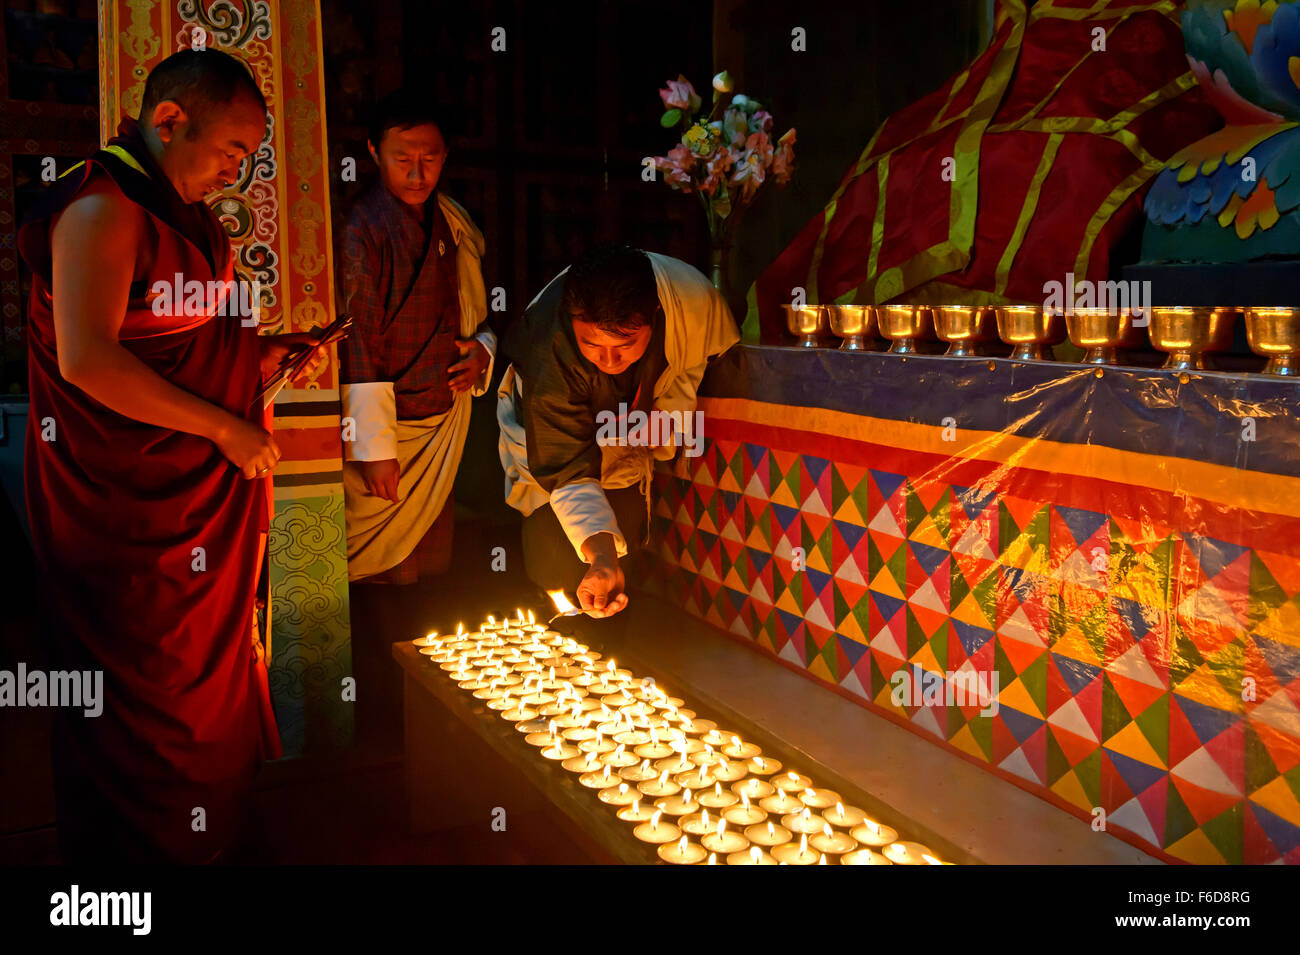 Ceremony of igniting 1000 butter lamps at the buddhist monastery of the Tashichho Dzong, Thimphu, Bhutan - Stock Image